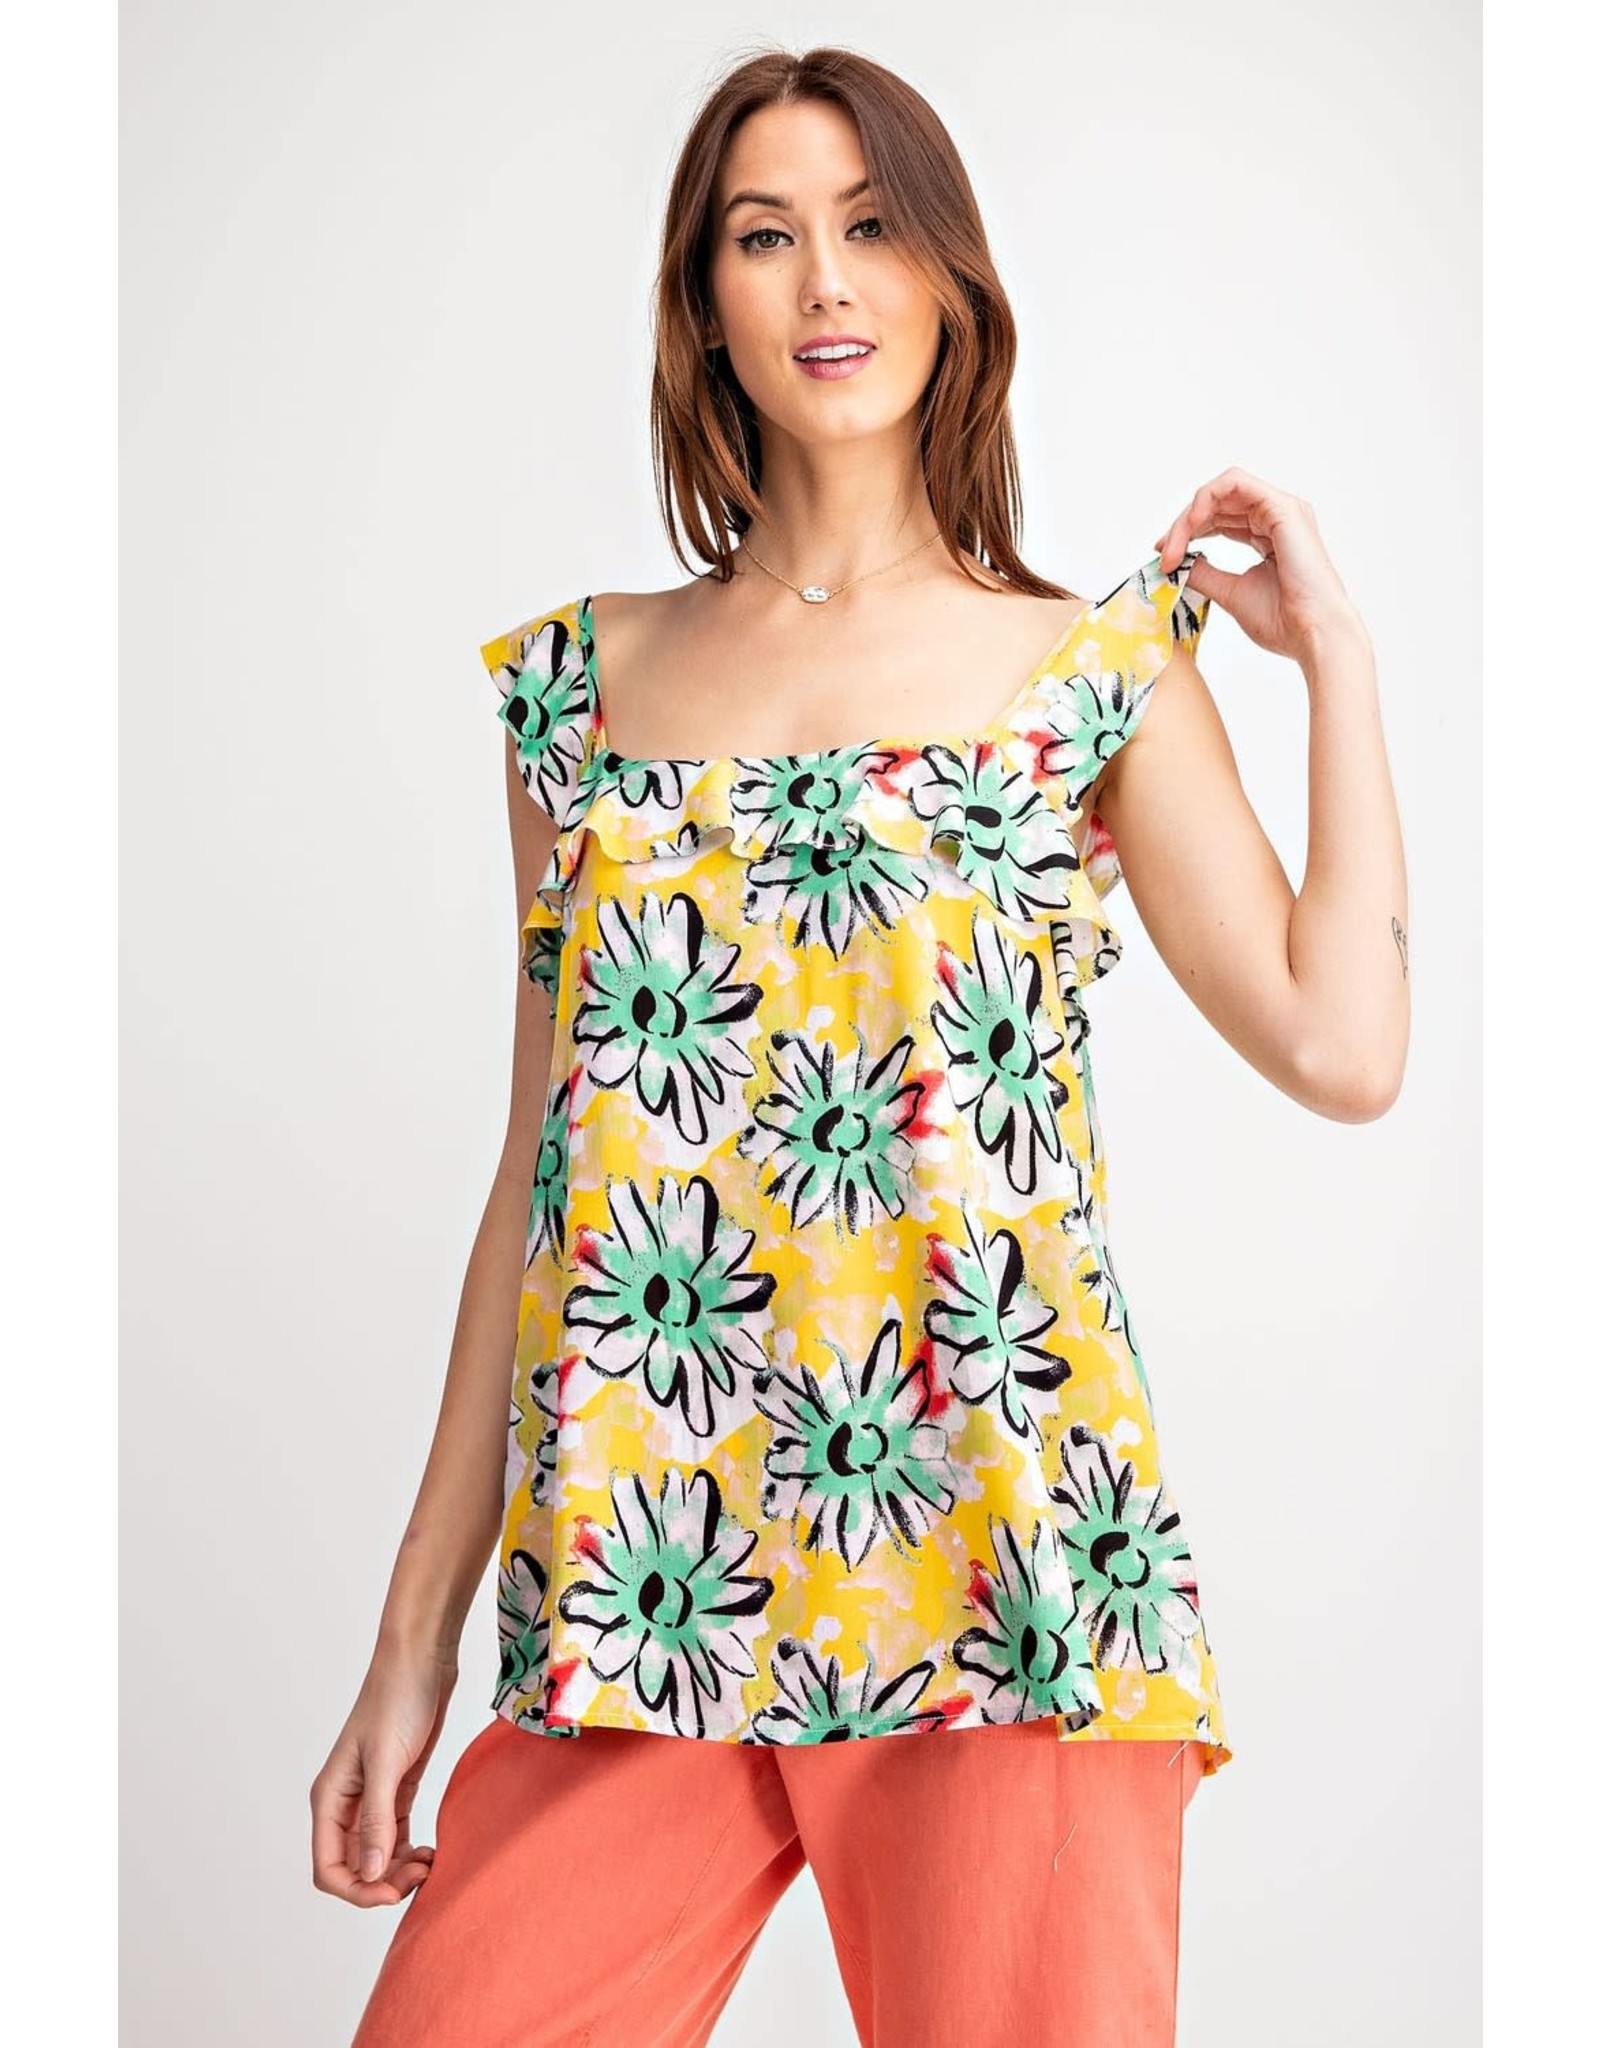 Easel Floral Print Ruffle Top - Yellow